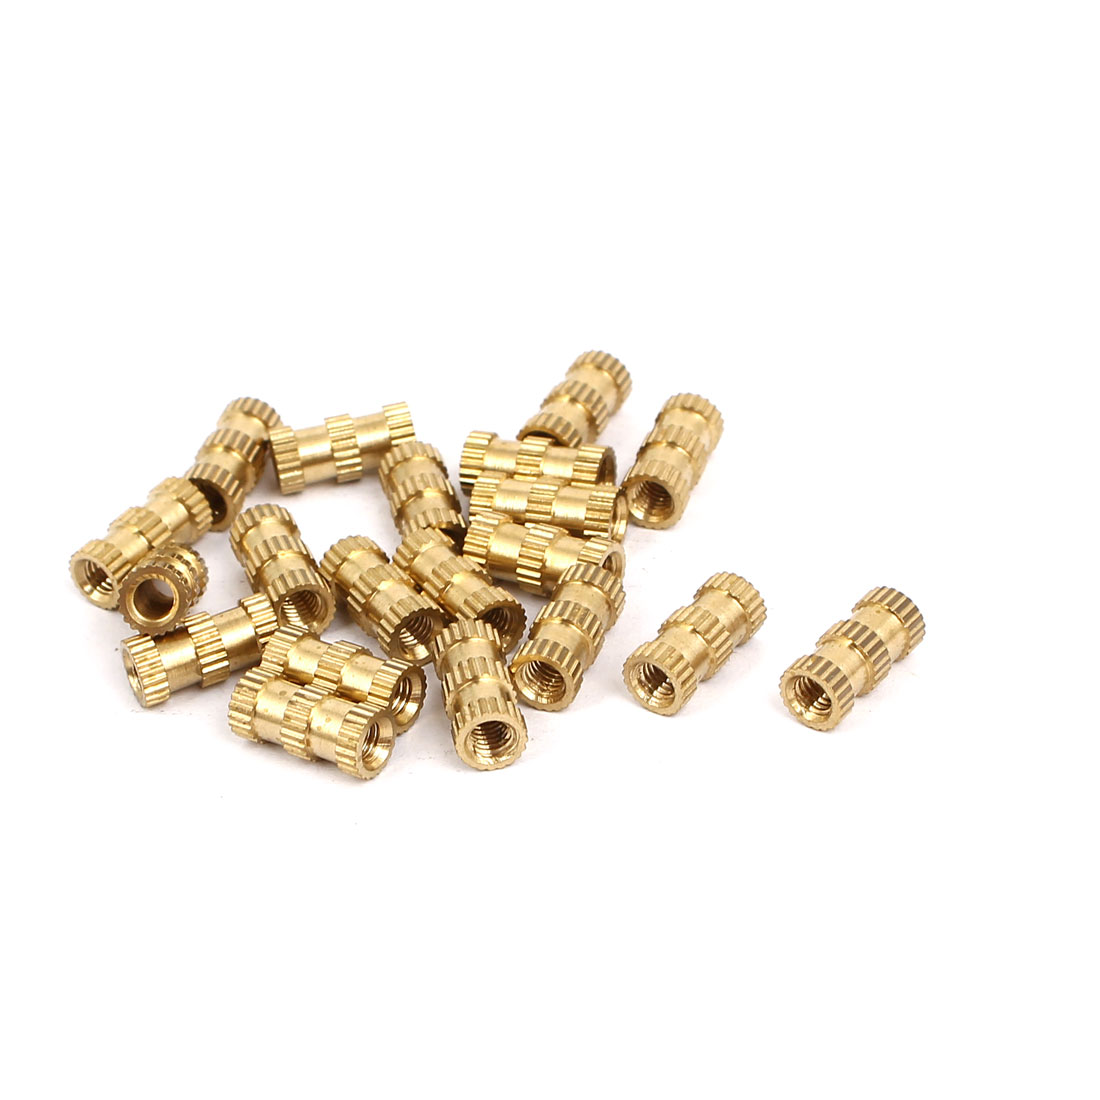 M3x10mmx4.8mm Brass Knurled Threaded Nut Insert Embedded Nuts Gold Tone 20pcs